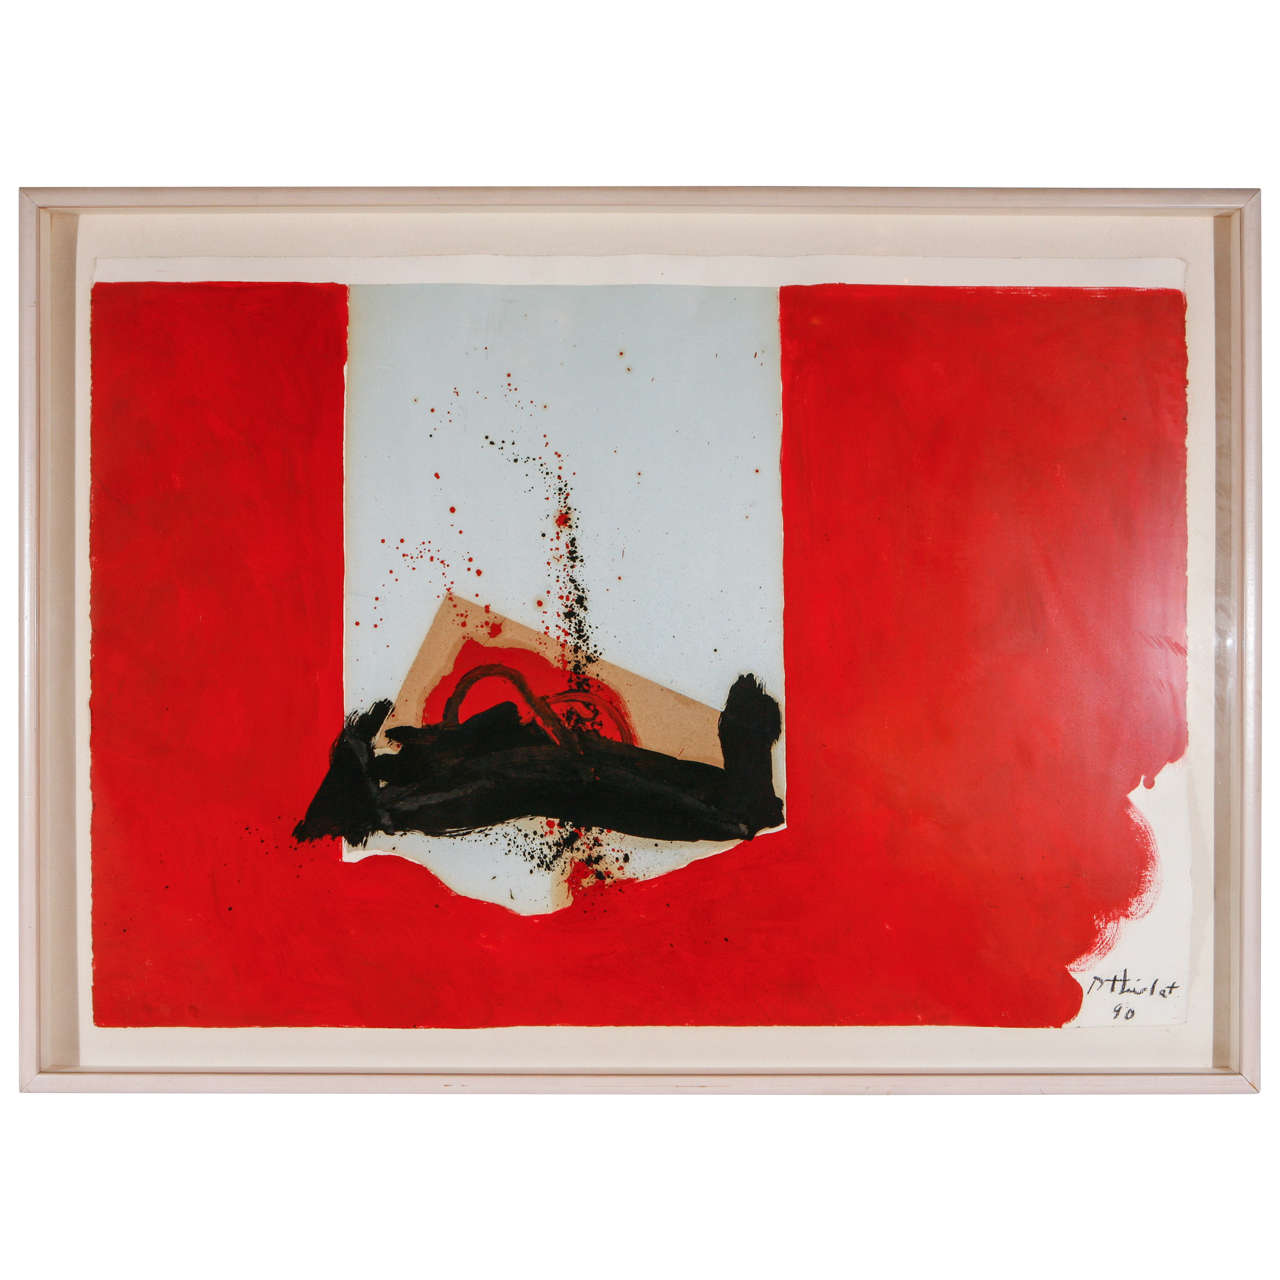 Original 20th century abstract painting for sale at 1stdibs for Original abstract paintings for sale